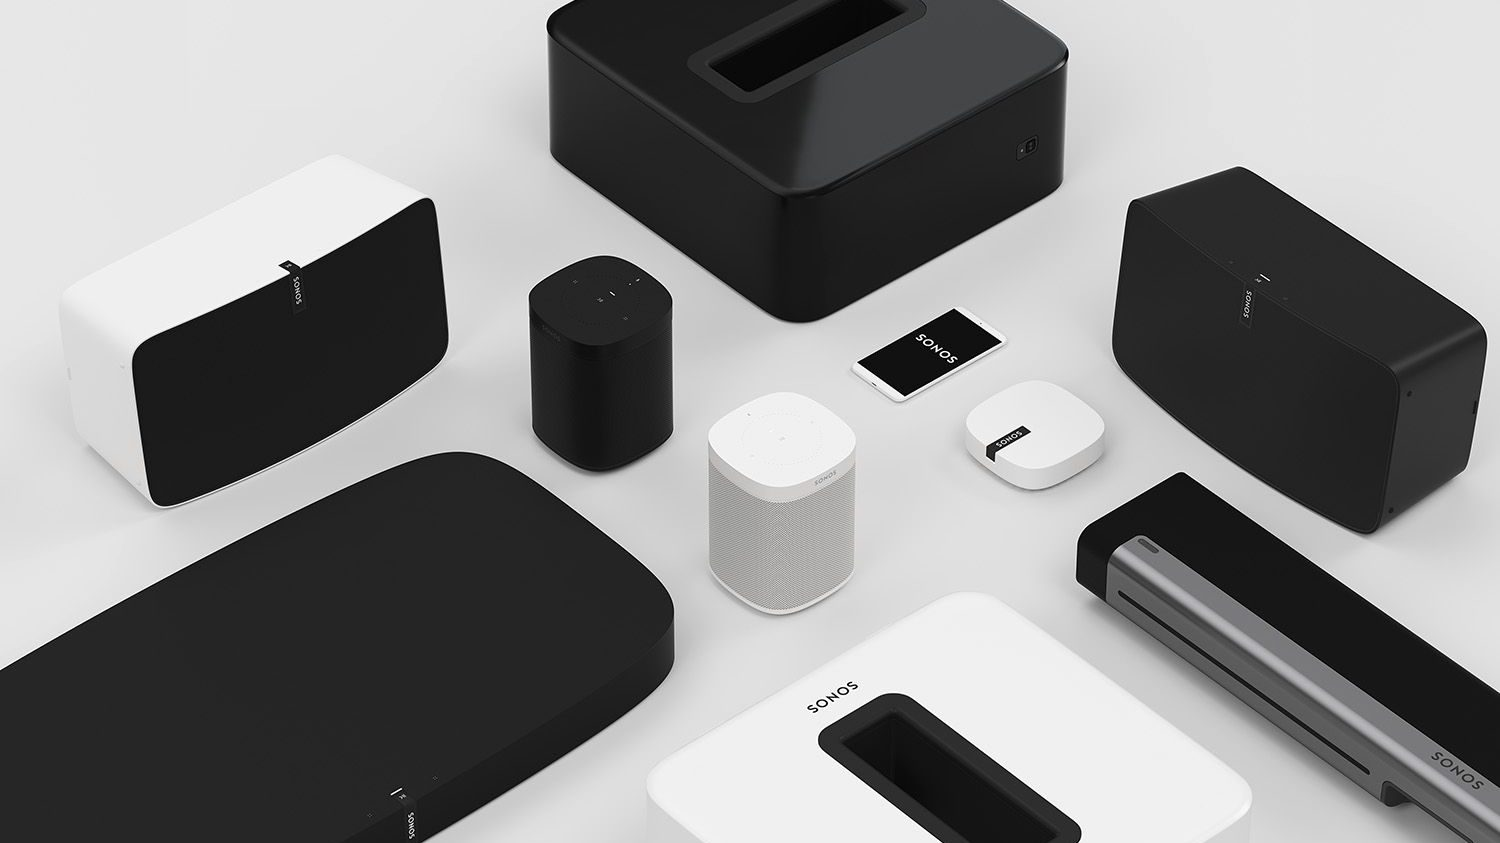 Sonos files for IPO with plans to raise $100 million